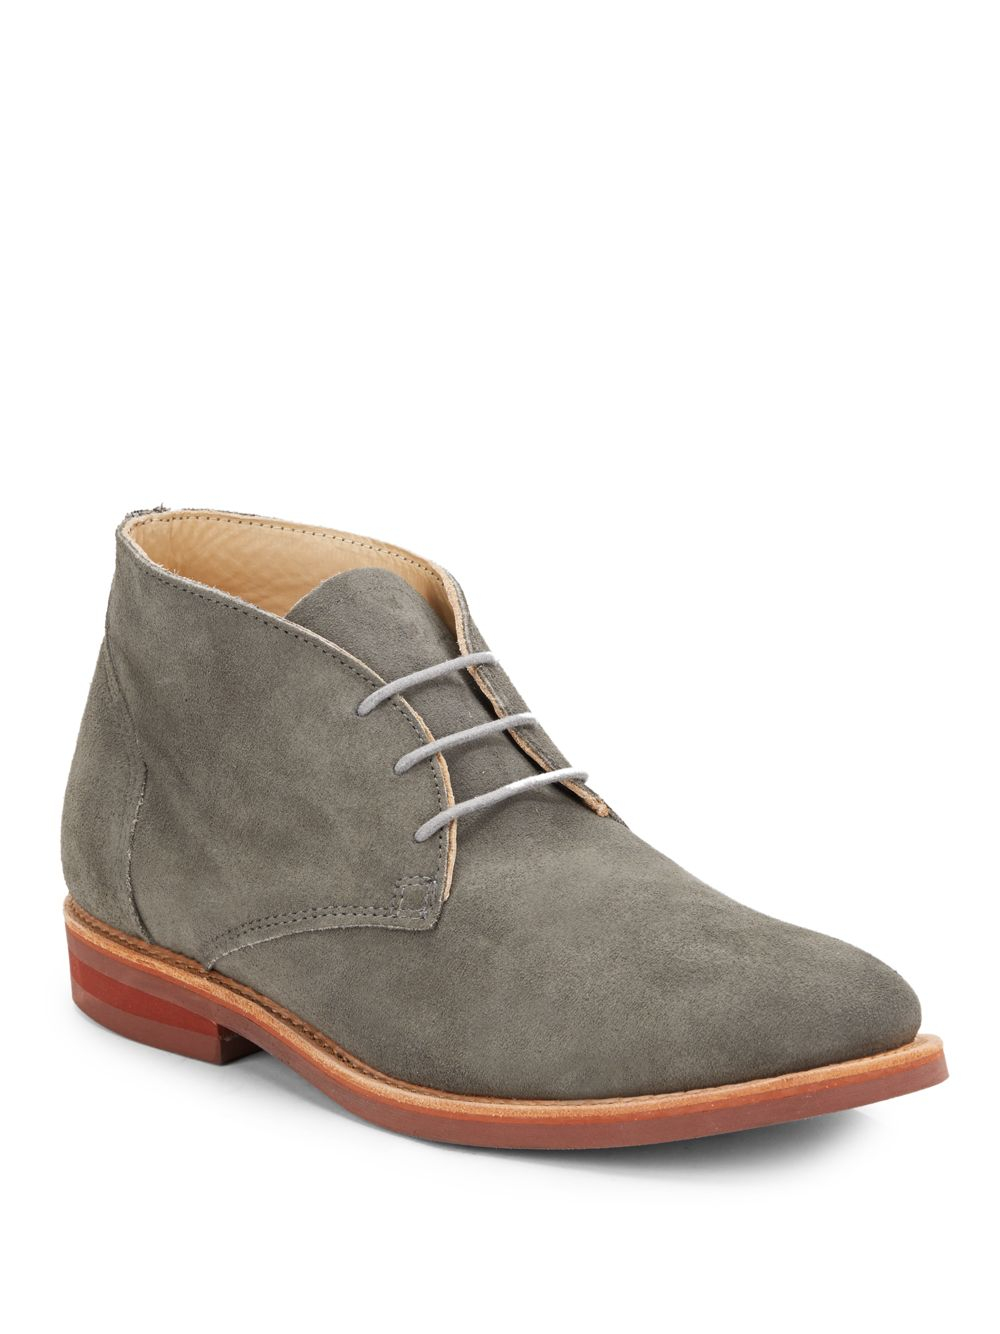 walk wilfred suede chukka boots in gray for grey